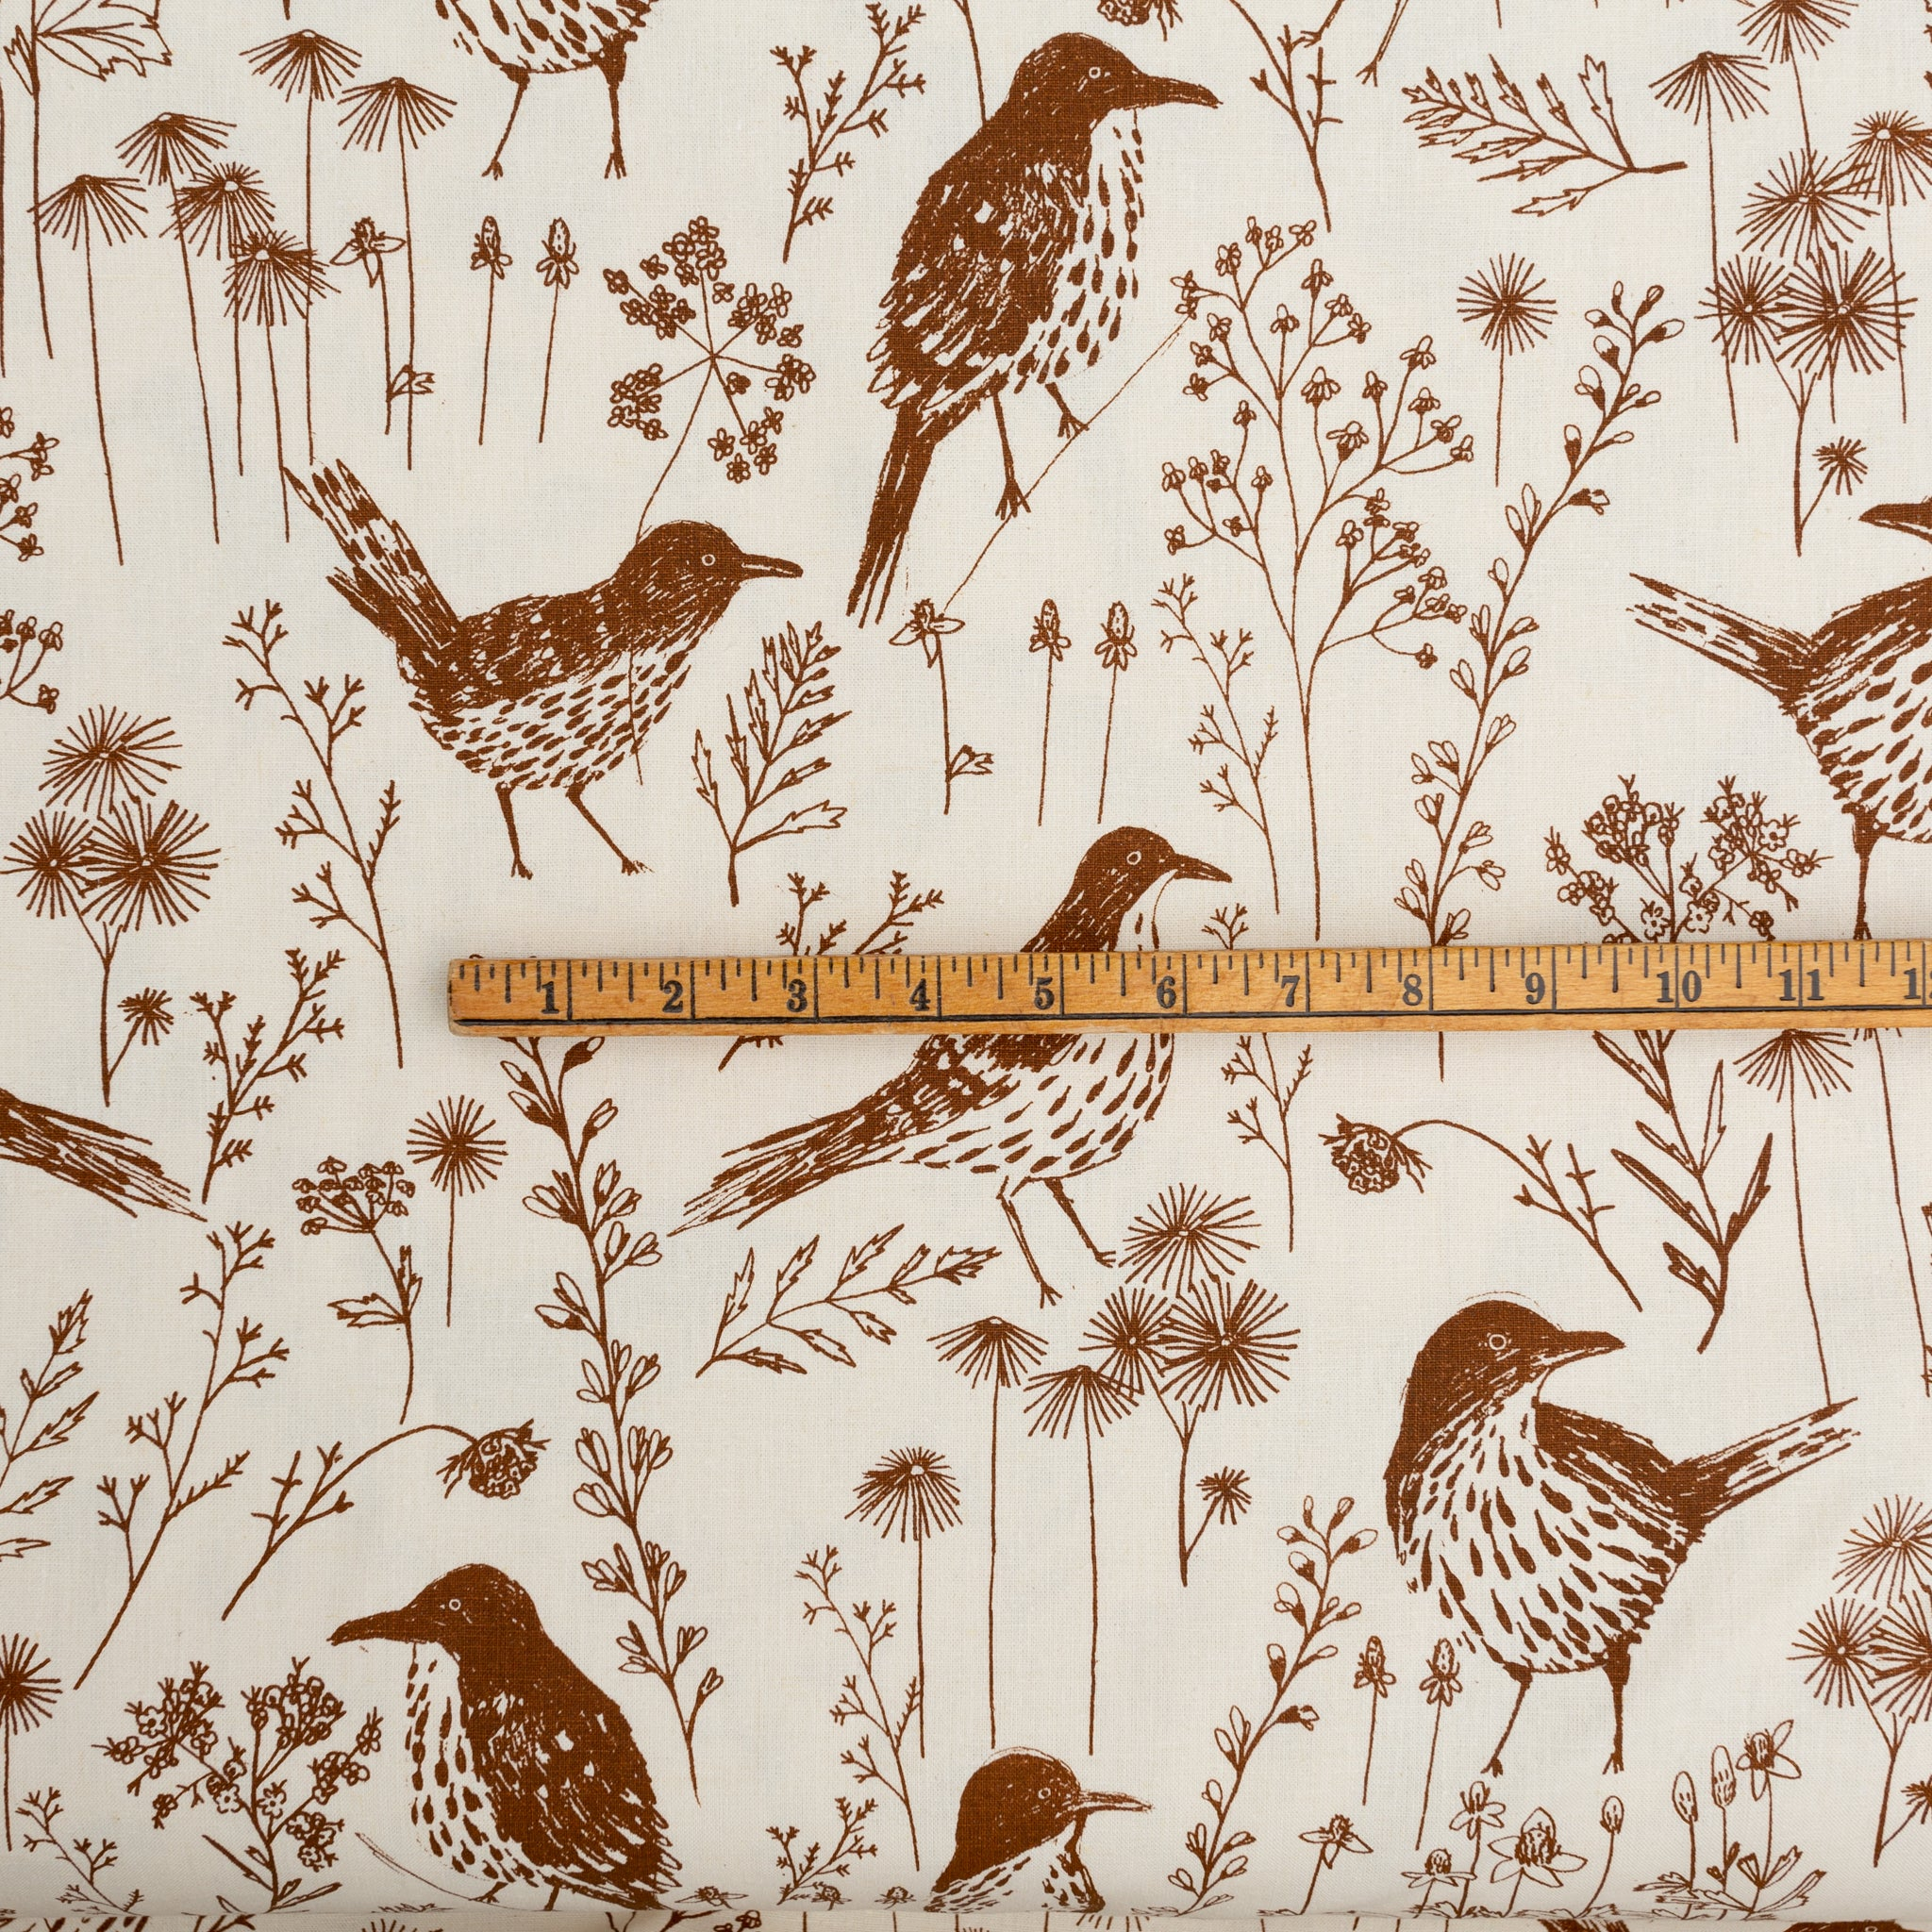 Screenprinted fabric yardage with brown thrashers and ruler for scale